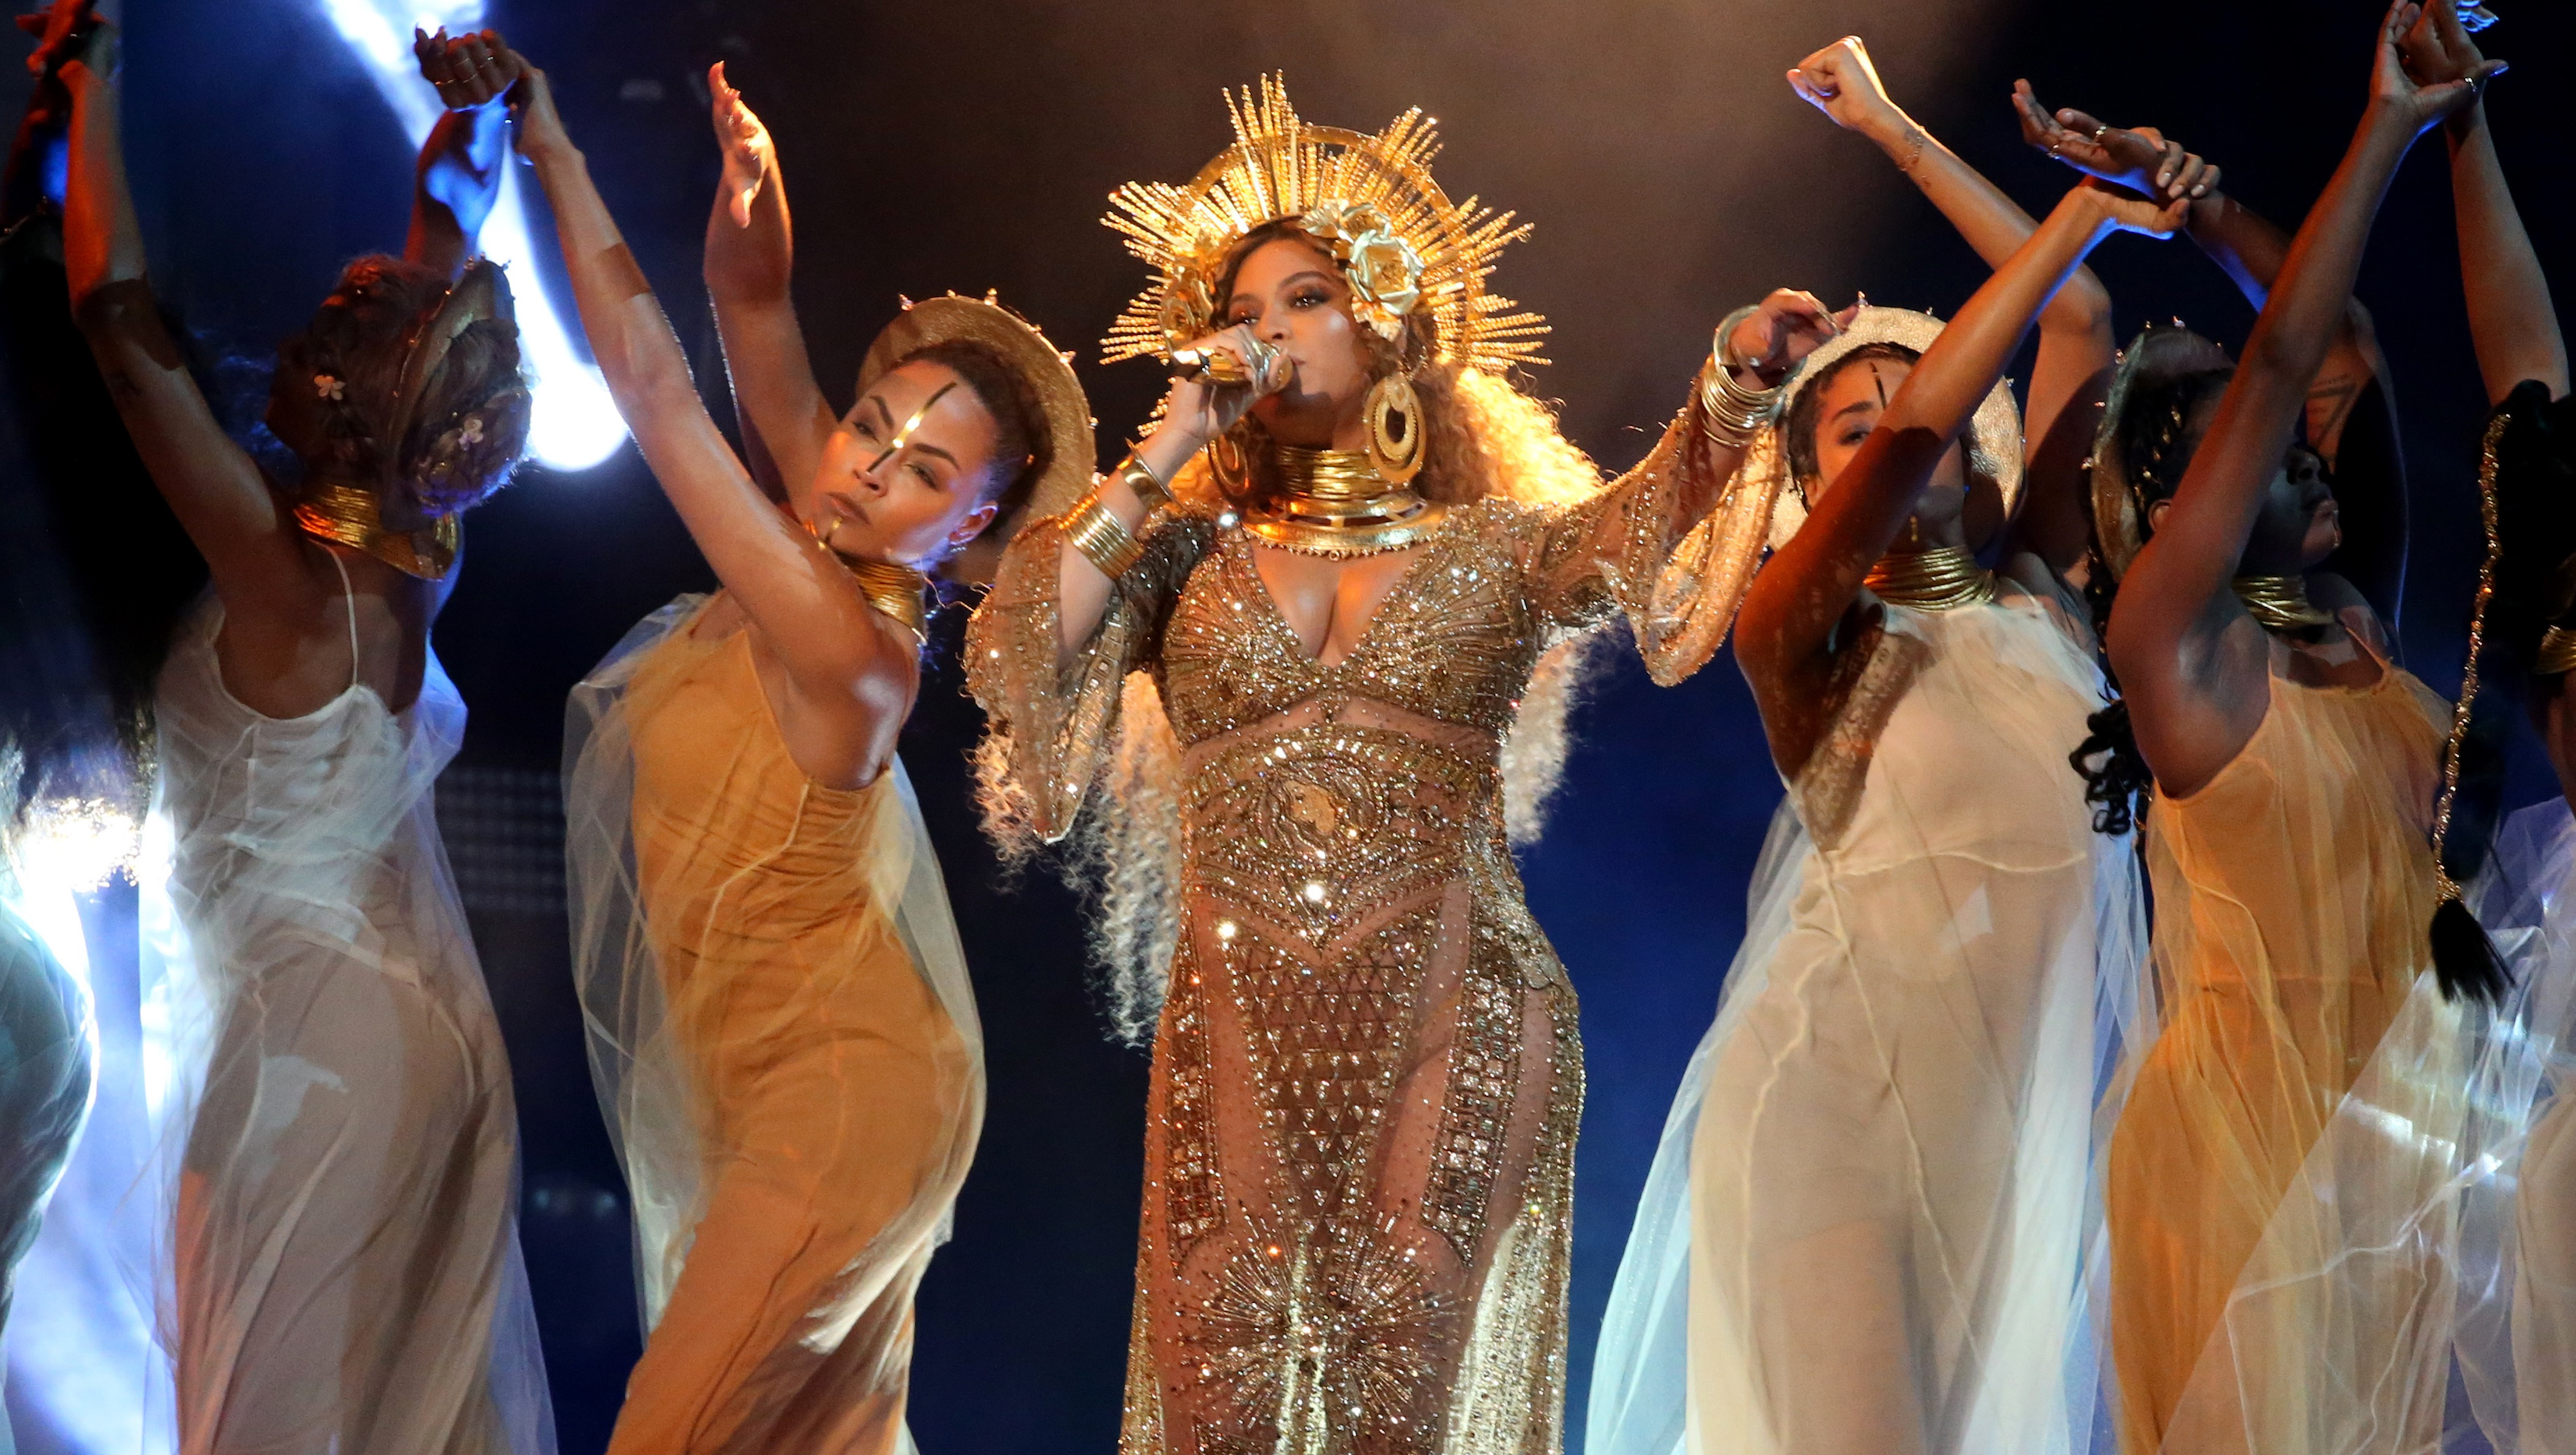 Beyonce performs at the 59th Annual Grammy Awards in Los Angeles, California, U.S. , February 12, 2017. REUTERS/Lucy Nicholson - RTSYCMS